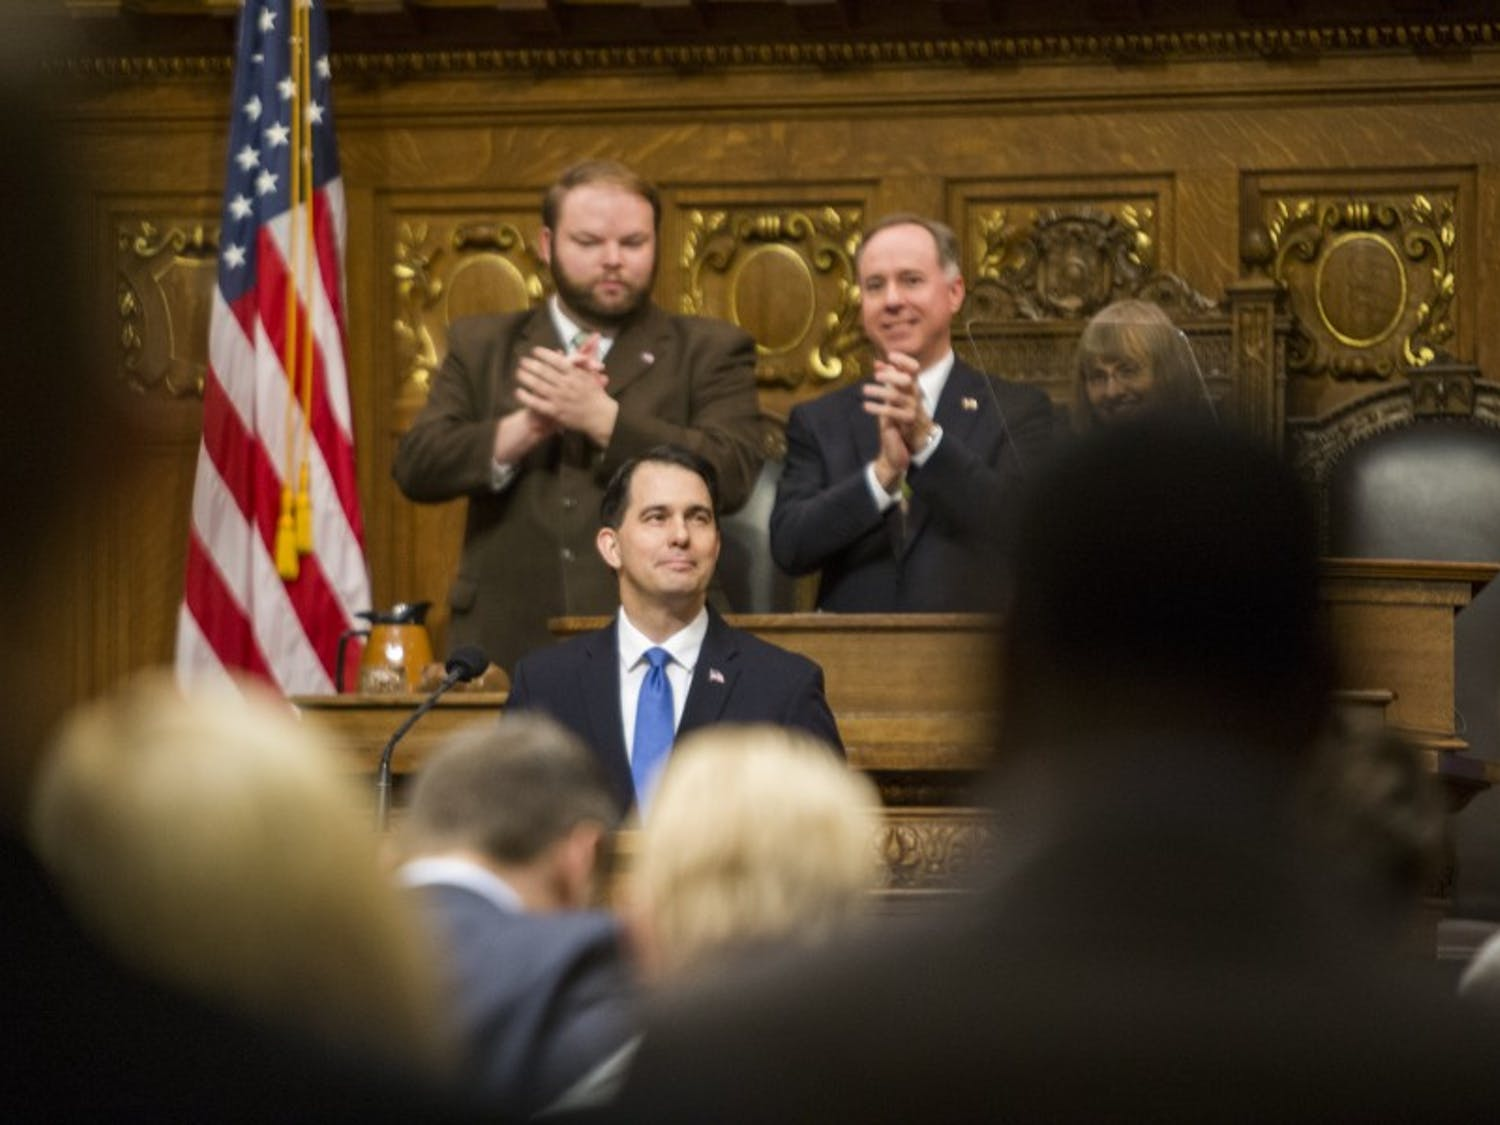 Gov. Scott Walker signed a host of bills into law Tuesday designed to combat child abuse and sex trafficking in Wisconsin.